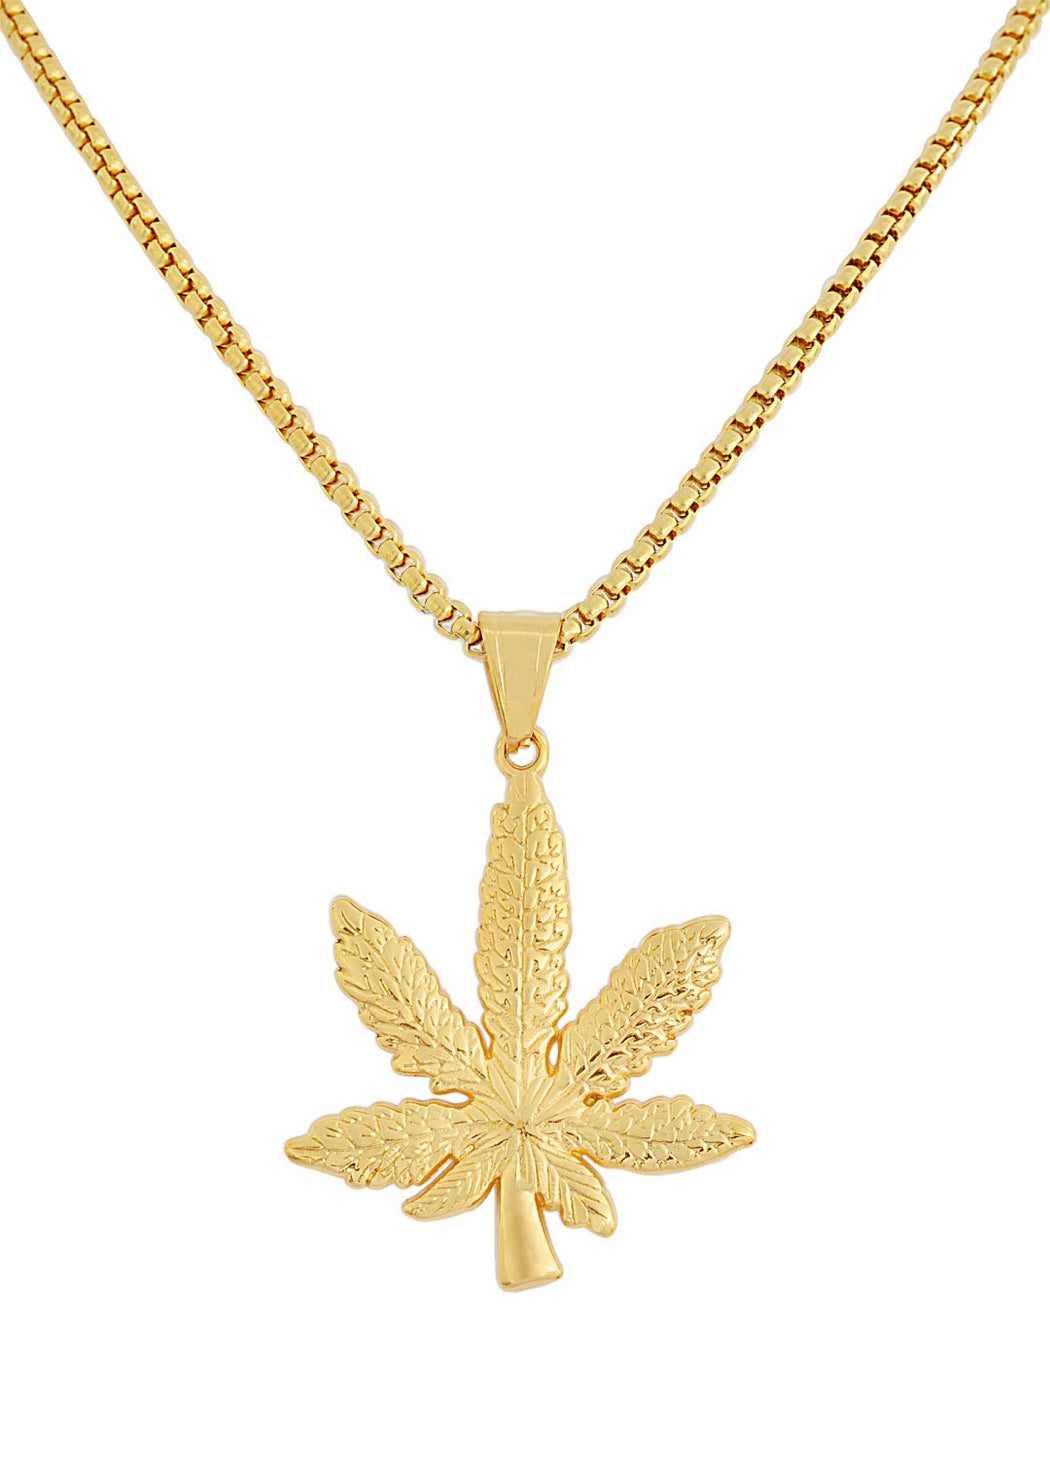 Weed Plant Pendant Necklace feature img full length